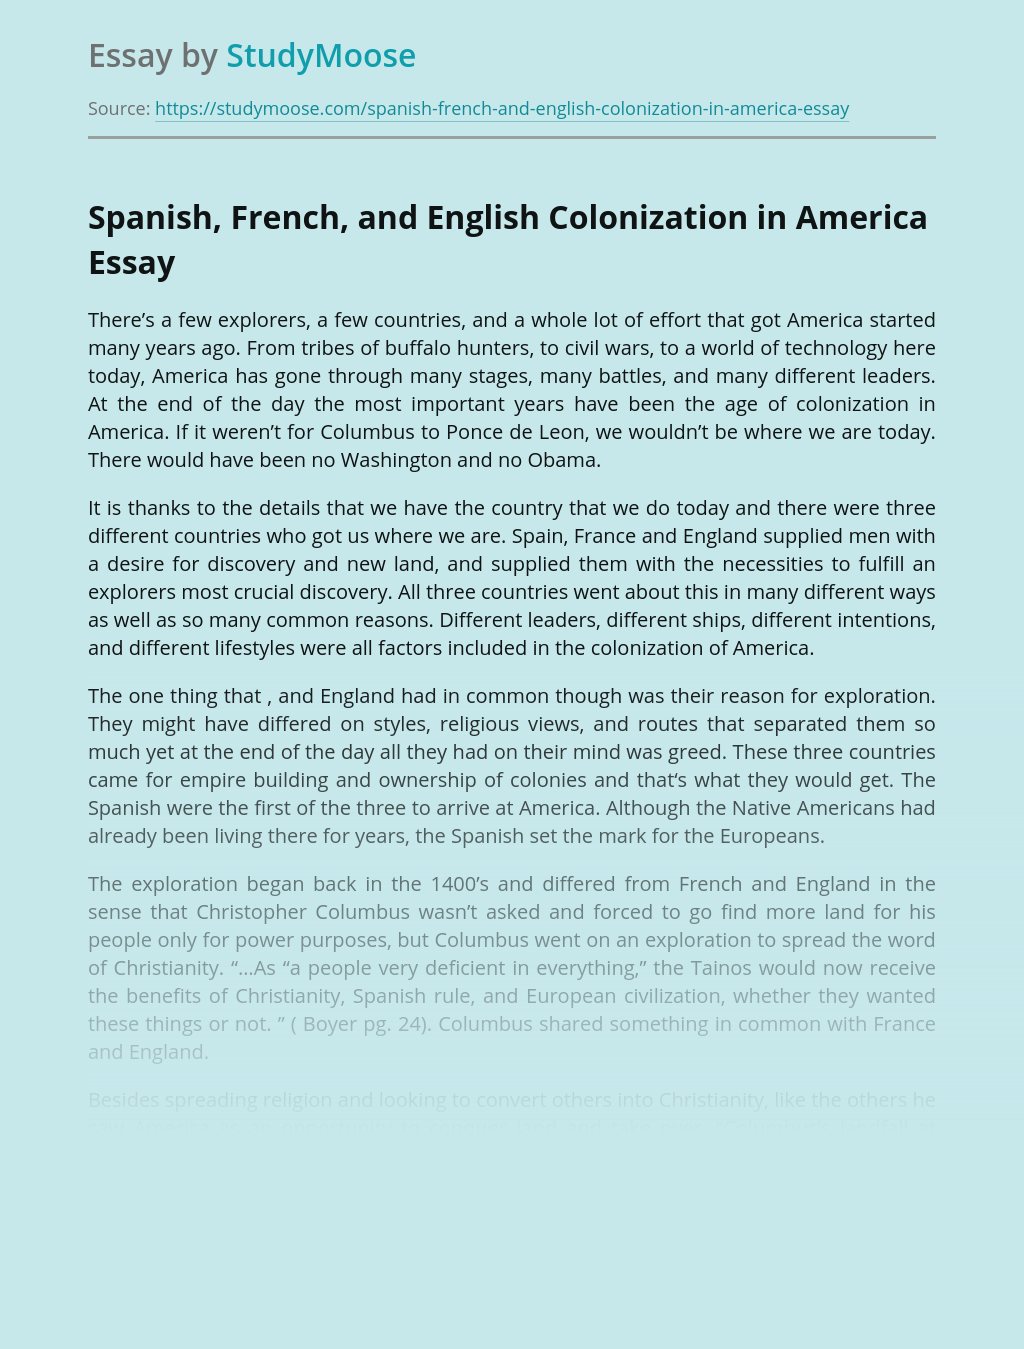 Spanish, French, and English Colonization in America